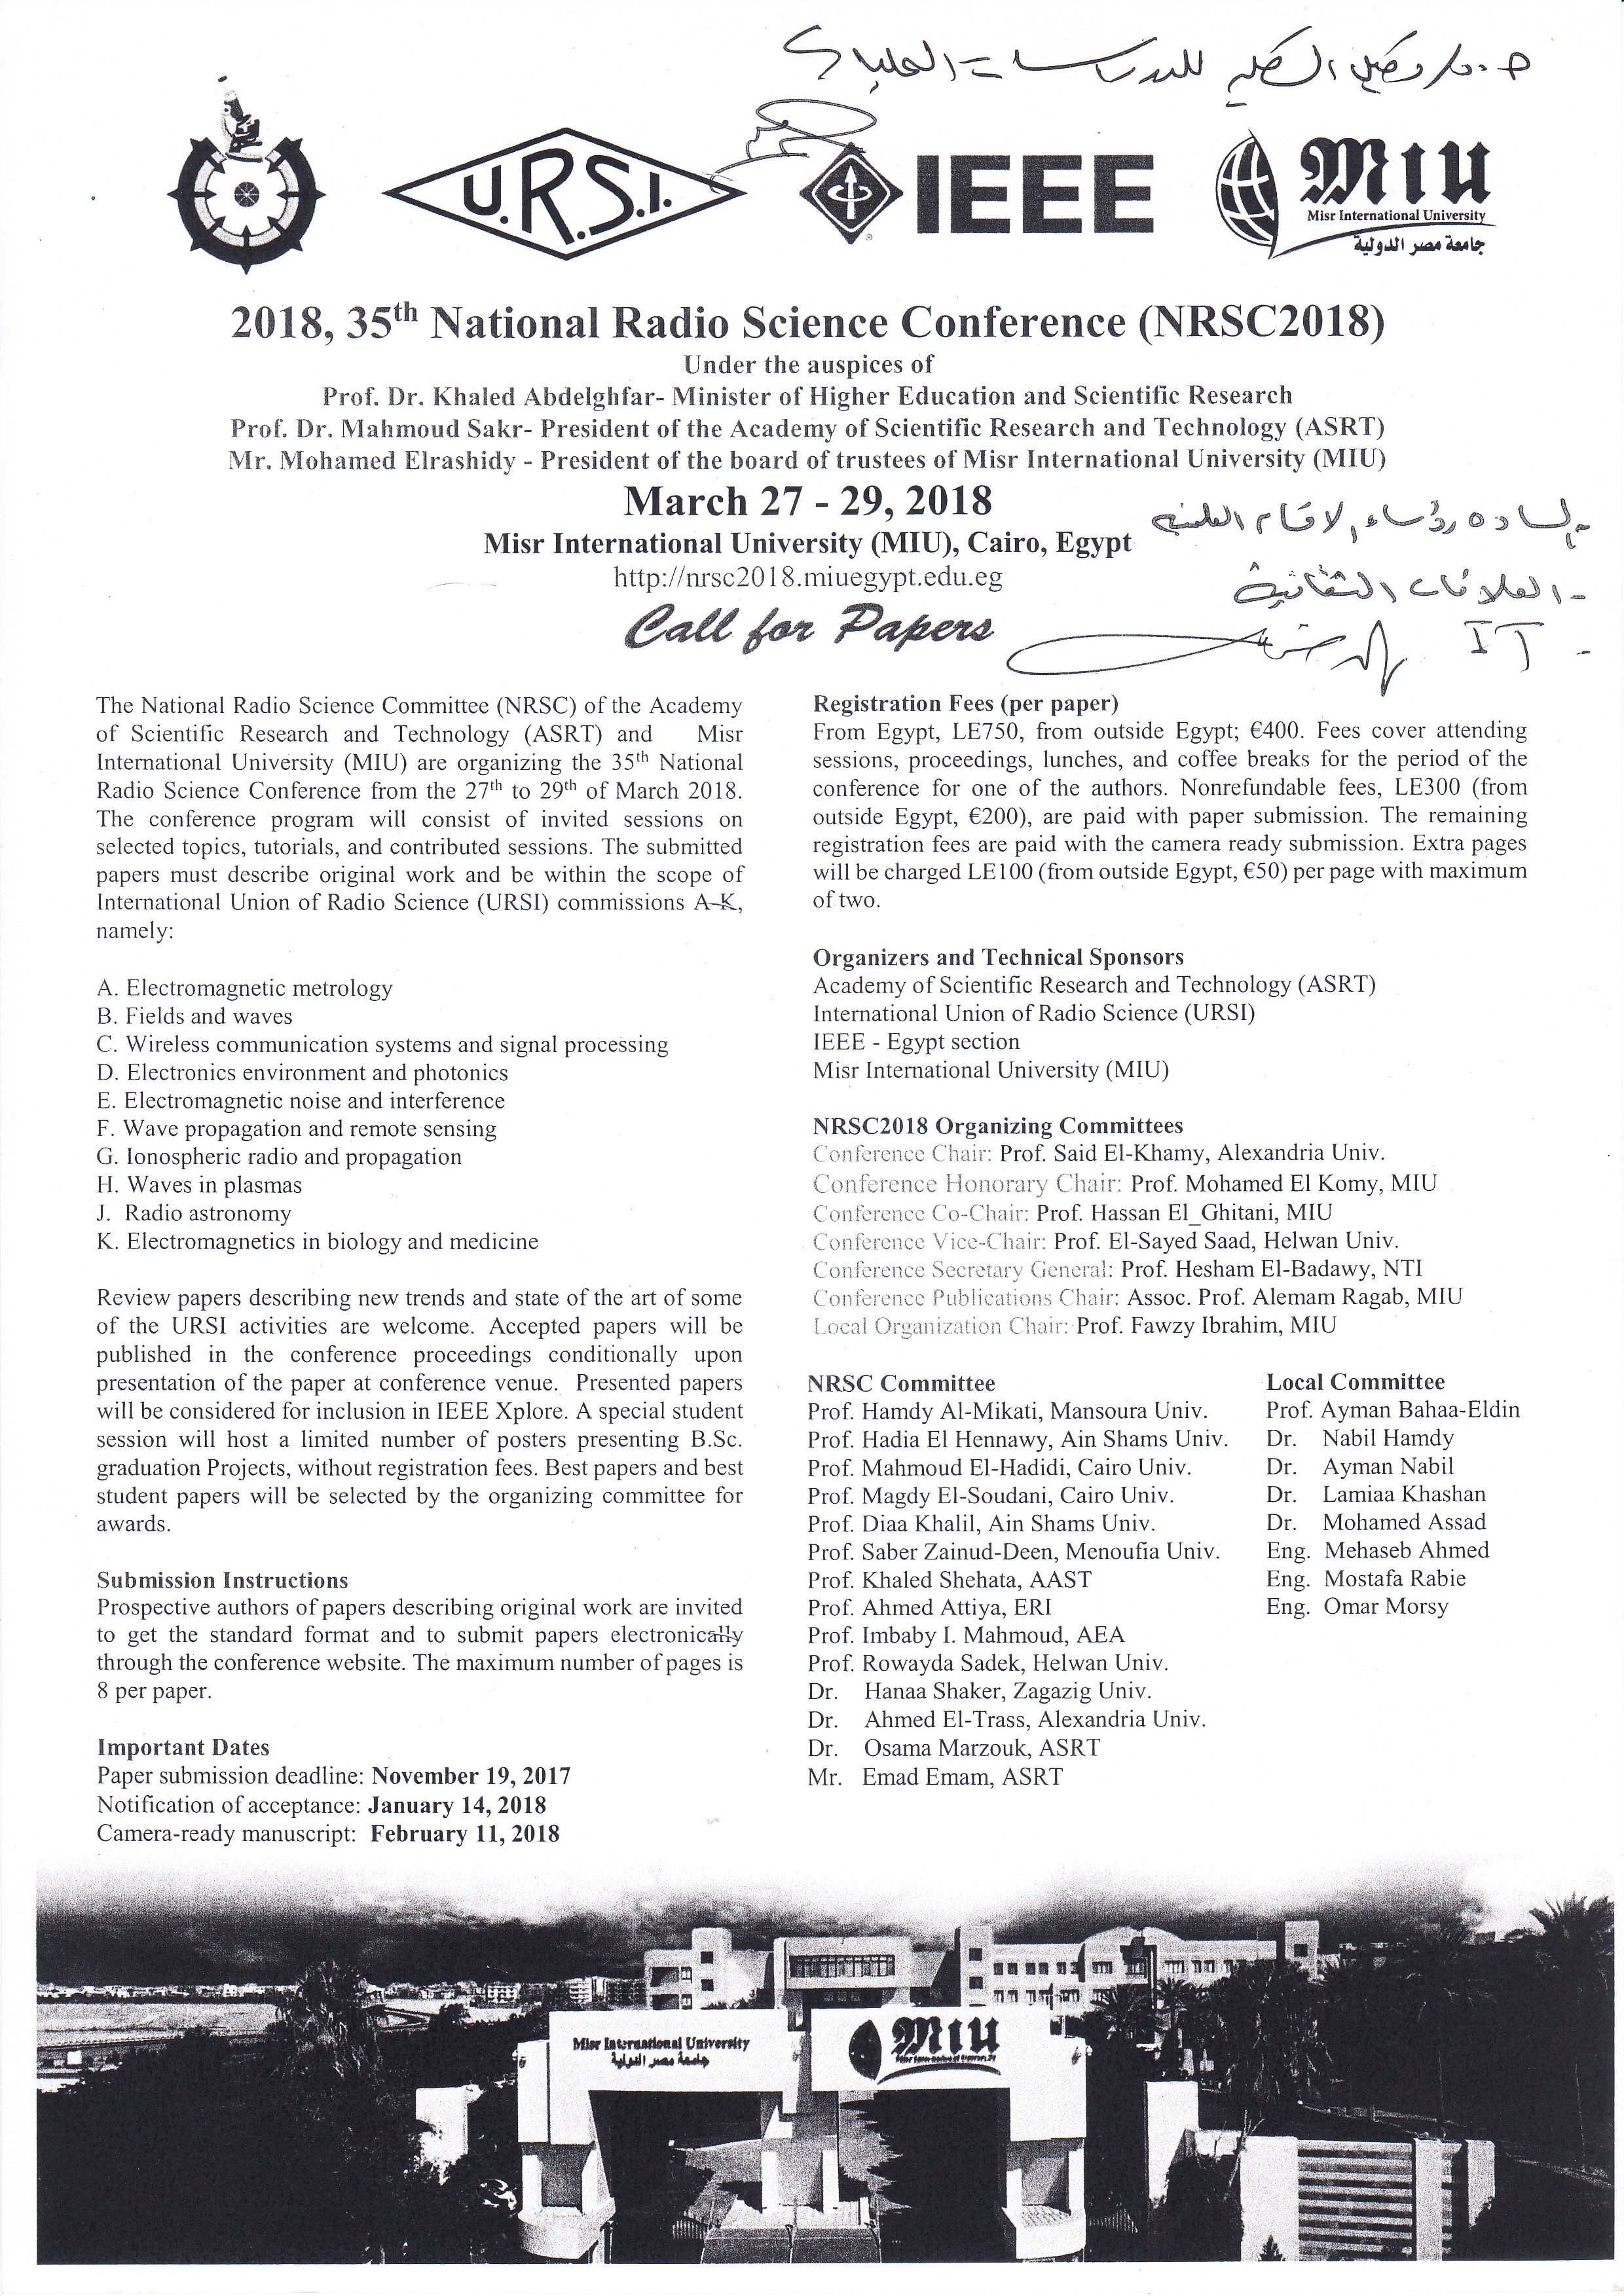 National Radio Science Conference (NRSC 2018) March 27 - 29 , 2018